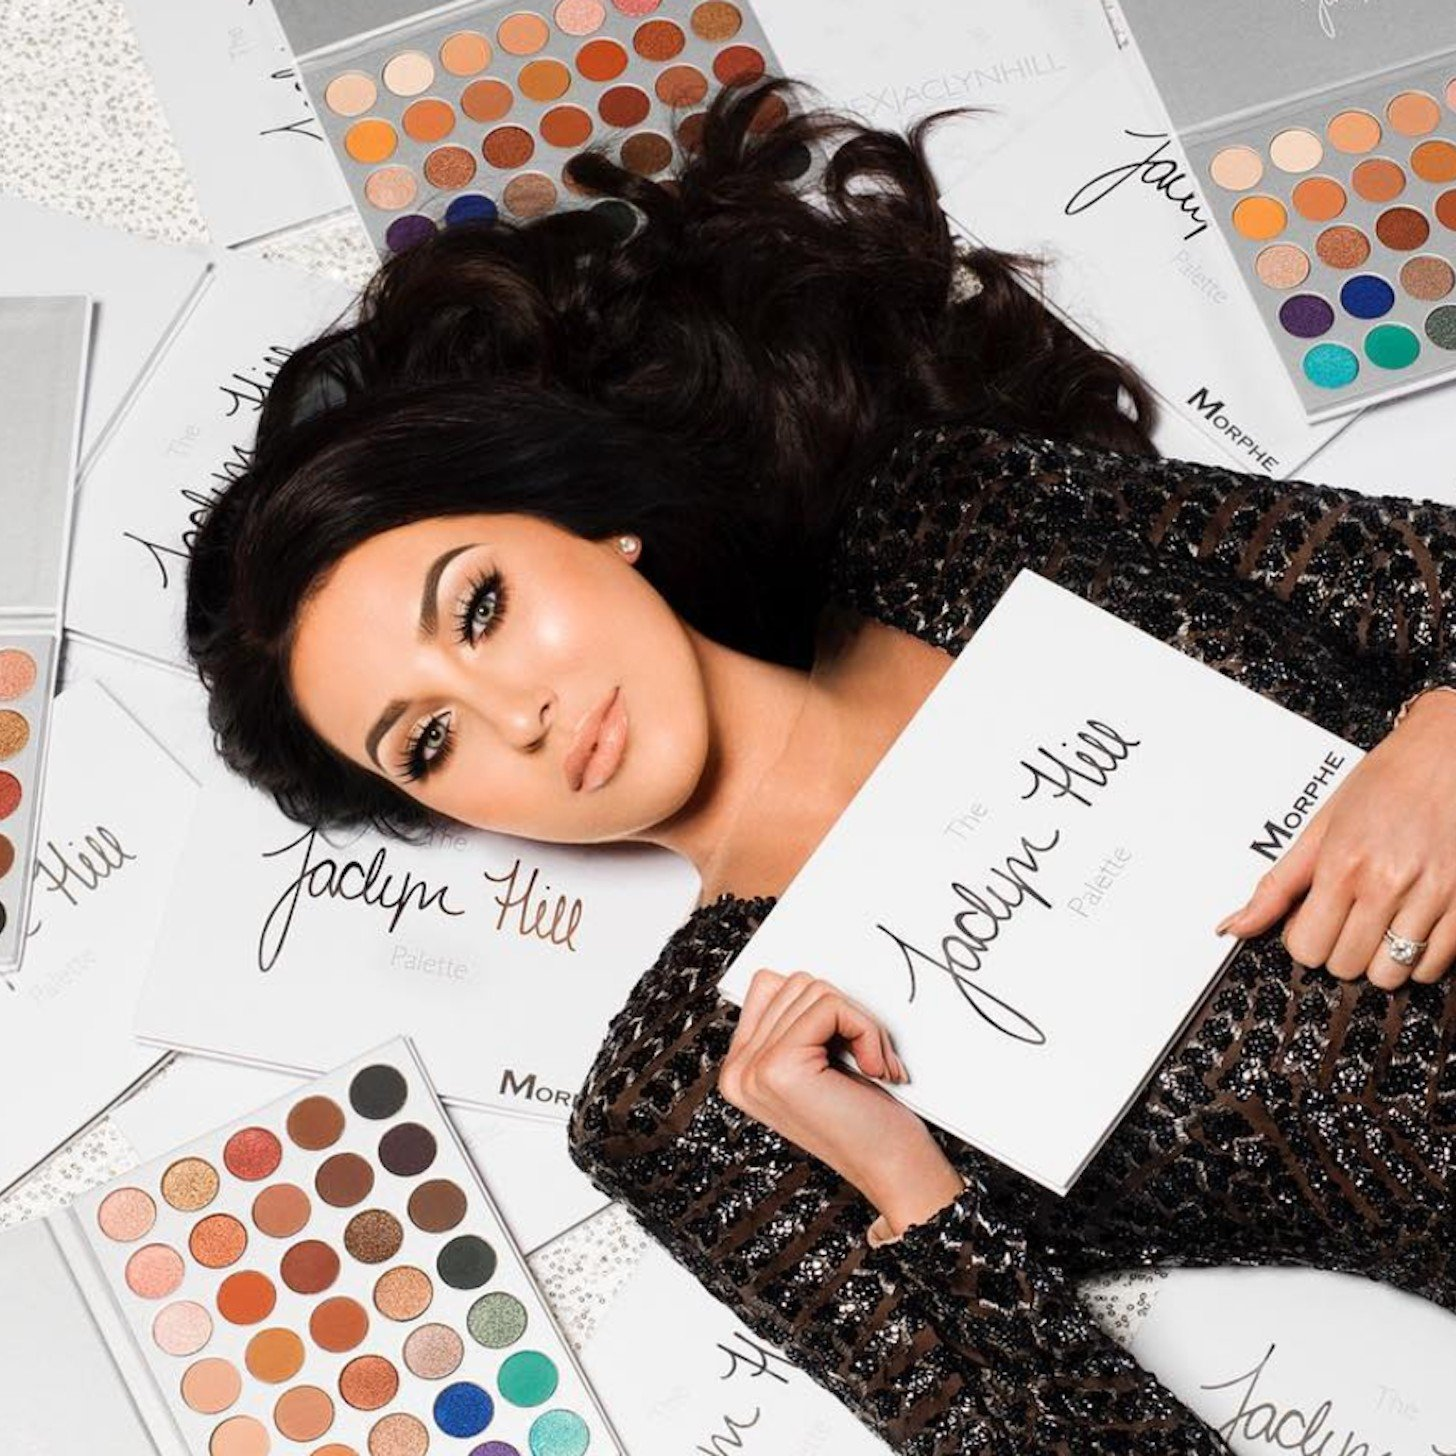 Photo: Instagram @jaclynhill